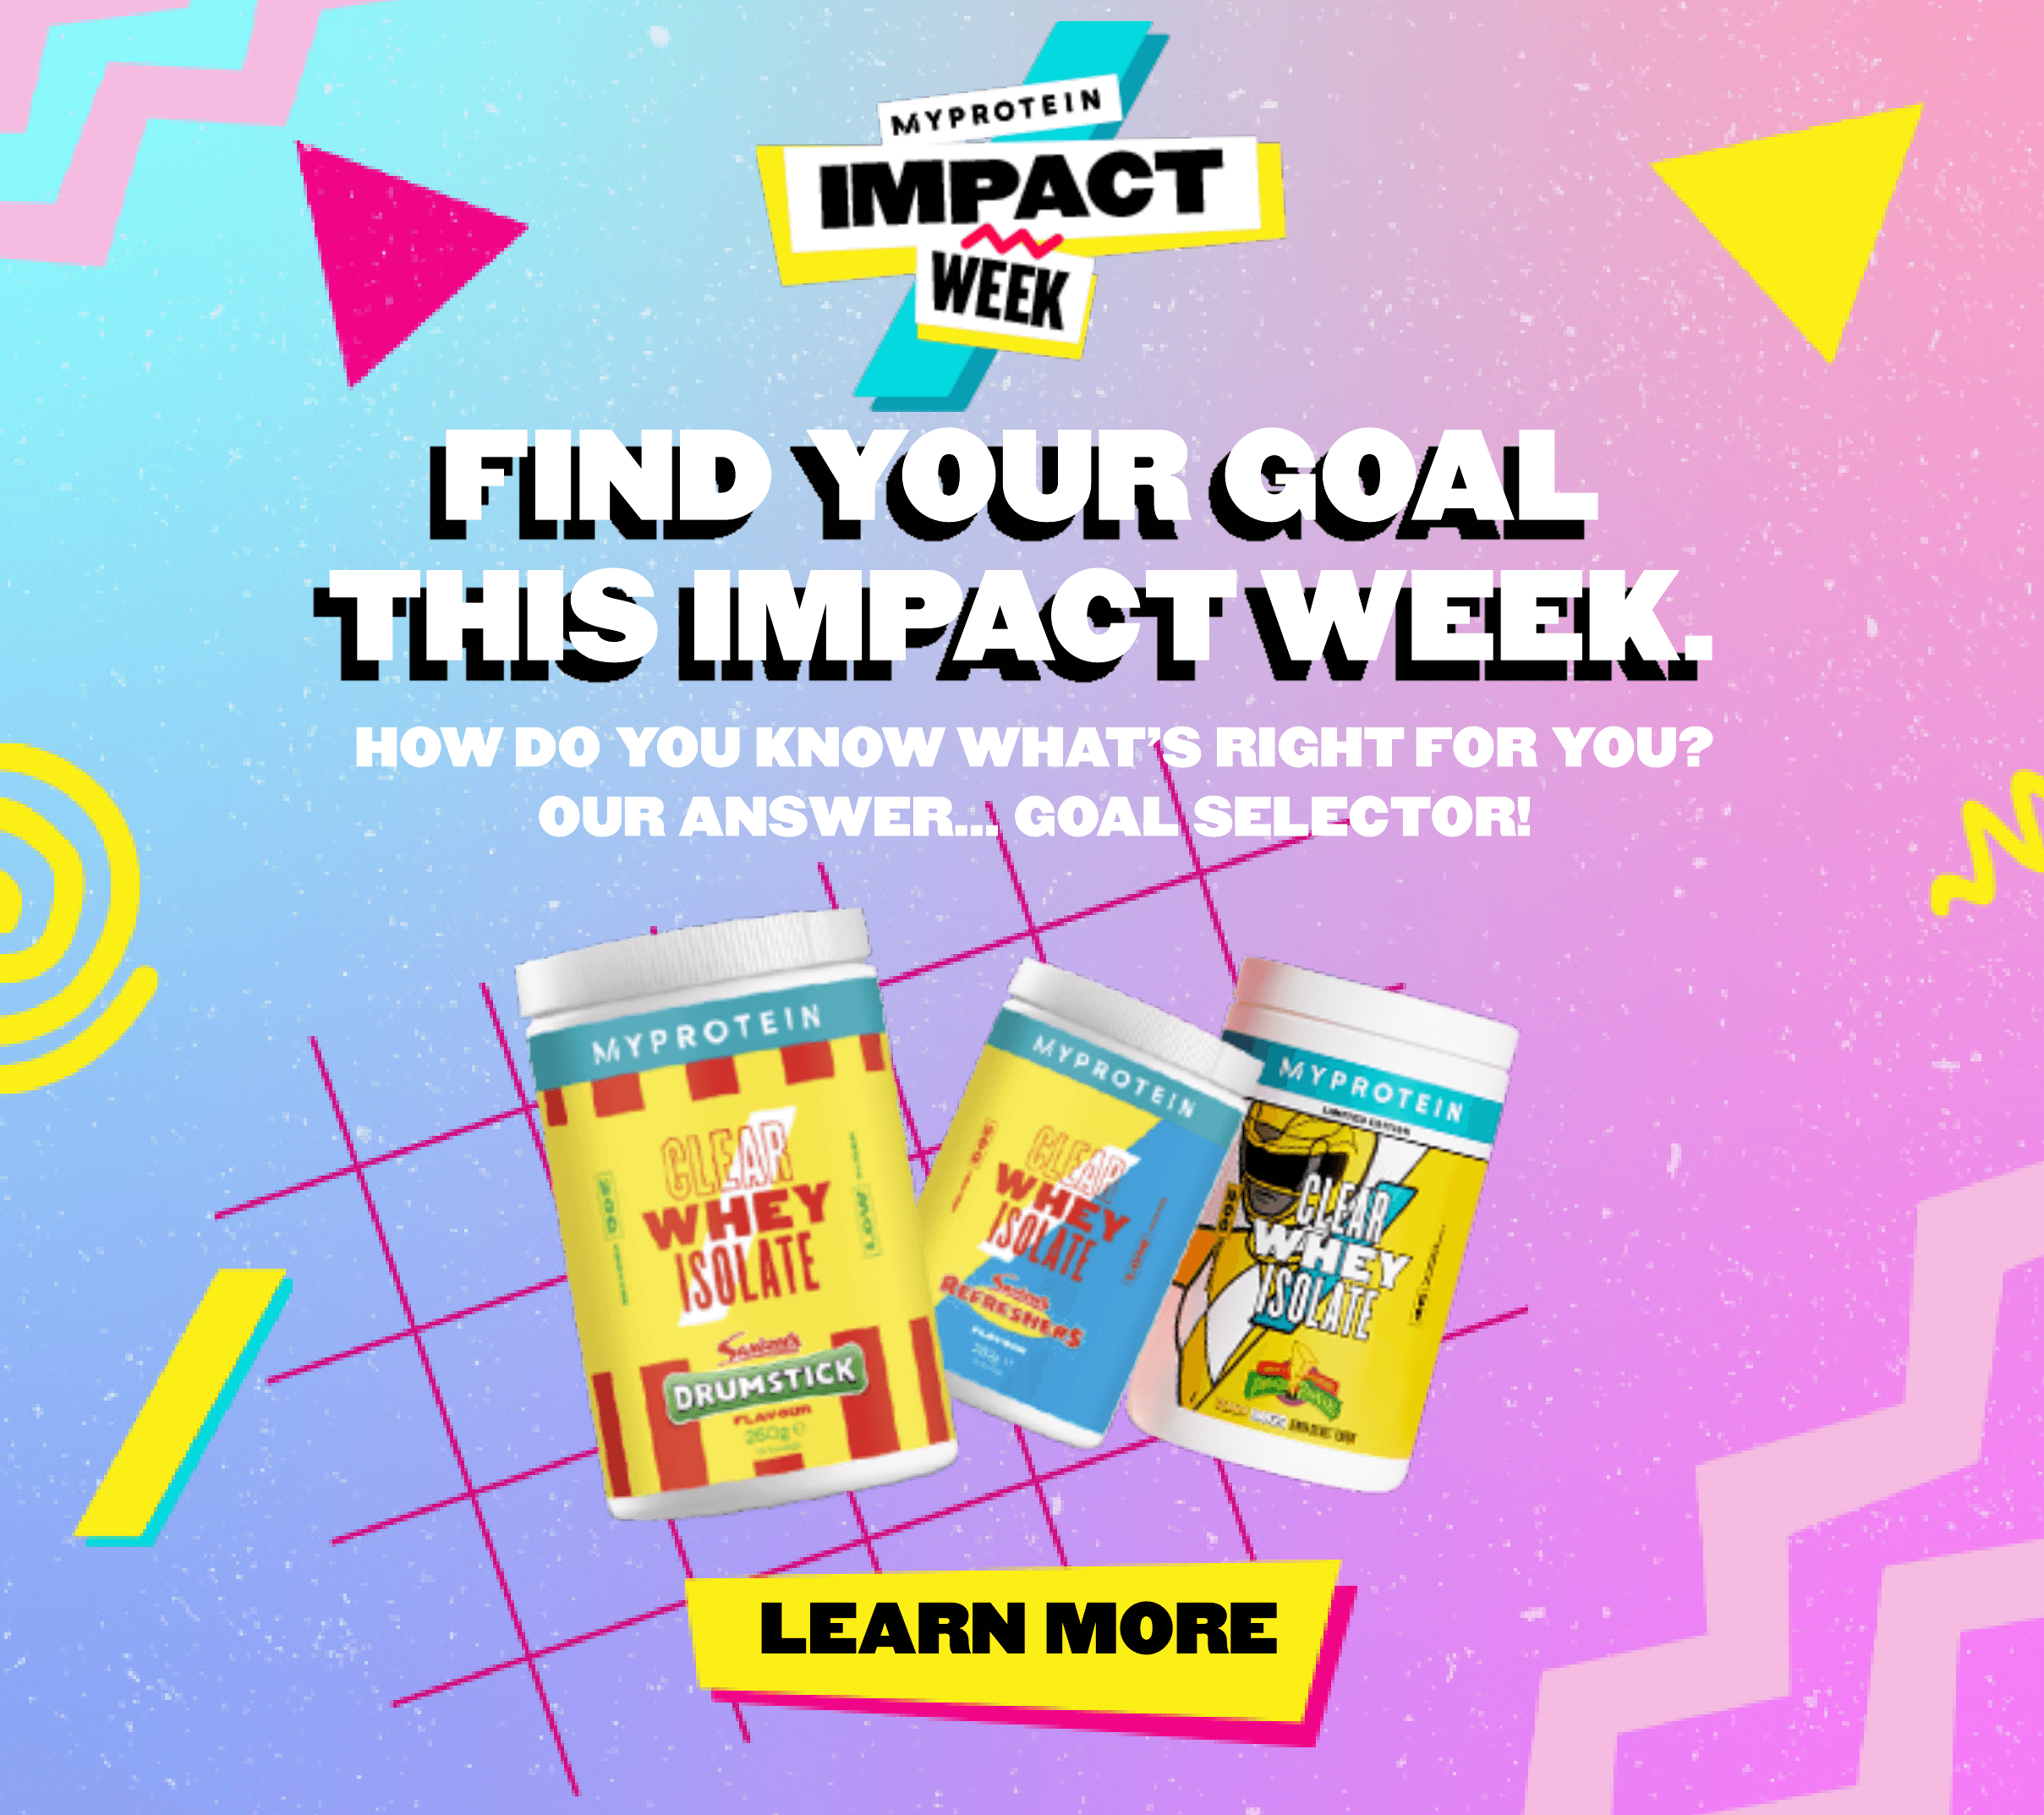 Find your goal this Impact week - Find out whats right for you!